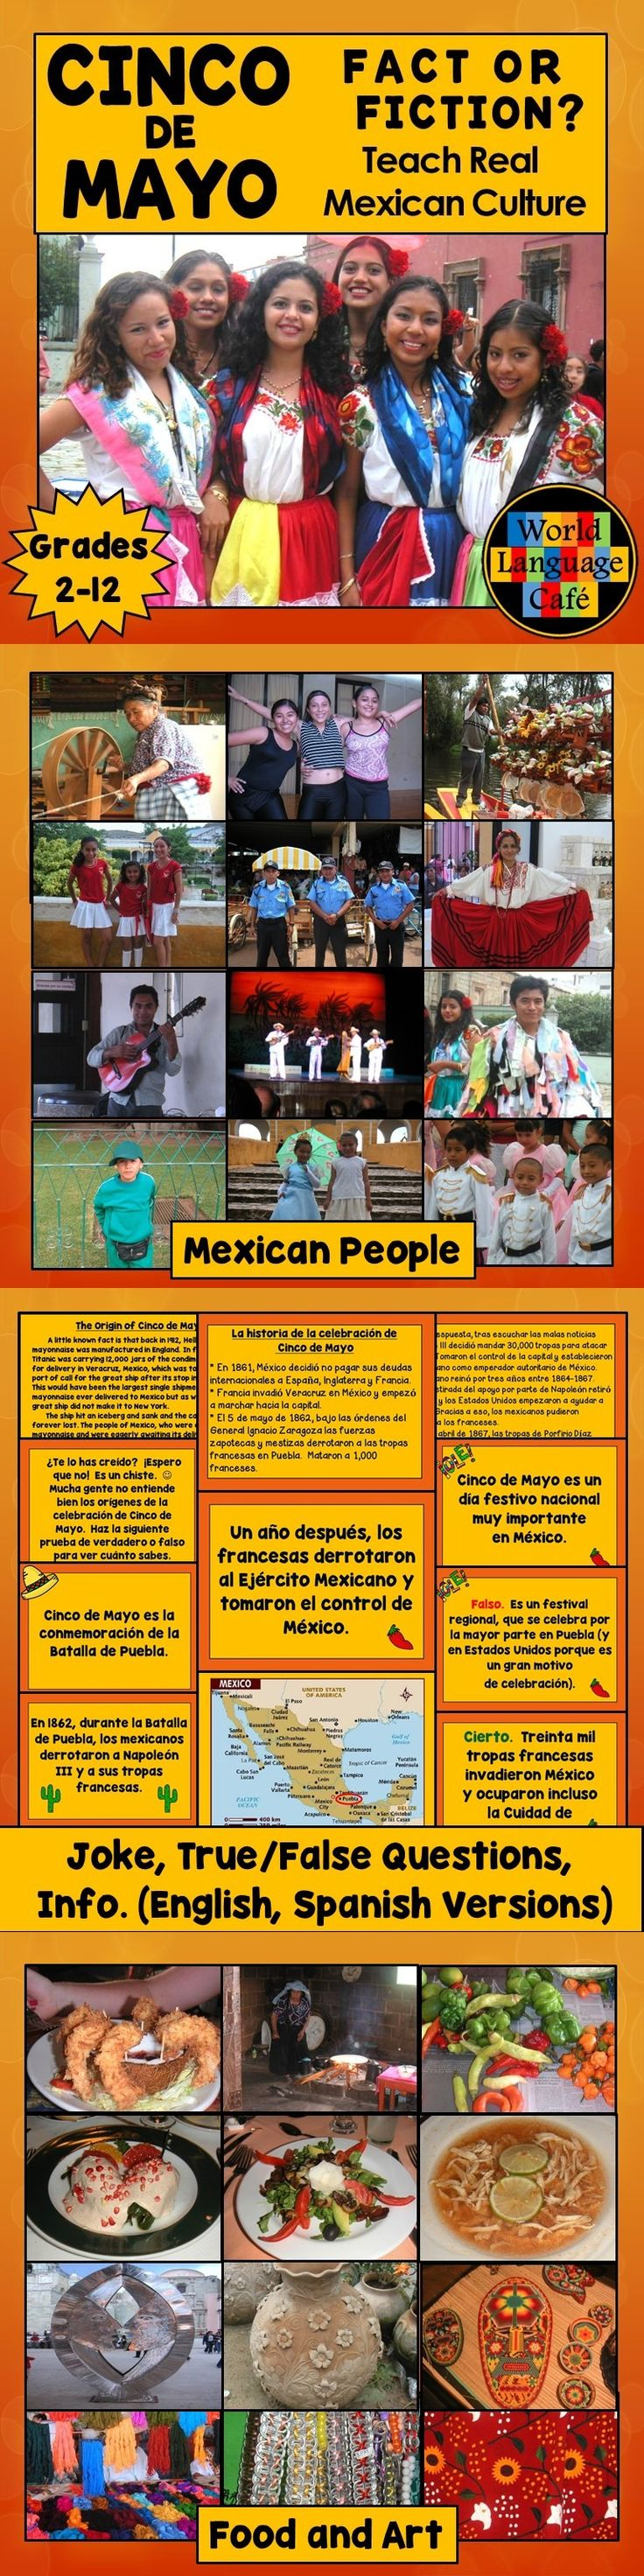 "Throw out your textbooks and use this Mexico lesson plan, PowerPoint presentation for Cinco de Mayo to teach your Spanish or English students what Mexico is really like.  * A joke (about Sinko de Mayo - the sinking of the huge shipment of mayonnaise aboard the Titanic) * True/false slides to quiz your students about what they know about Cinco de Mayo * The real Cinco de Mayo facts about what happened (students take notes on the ""after"" page) * Colorful photos and PPT presentation about…"